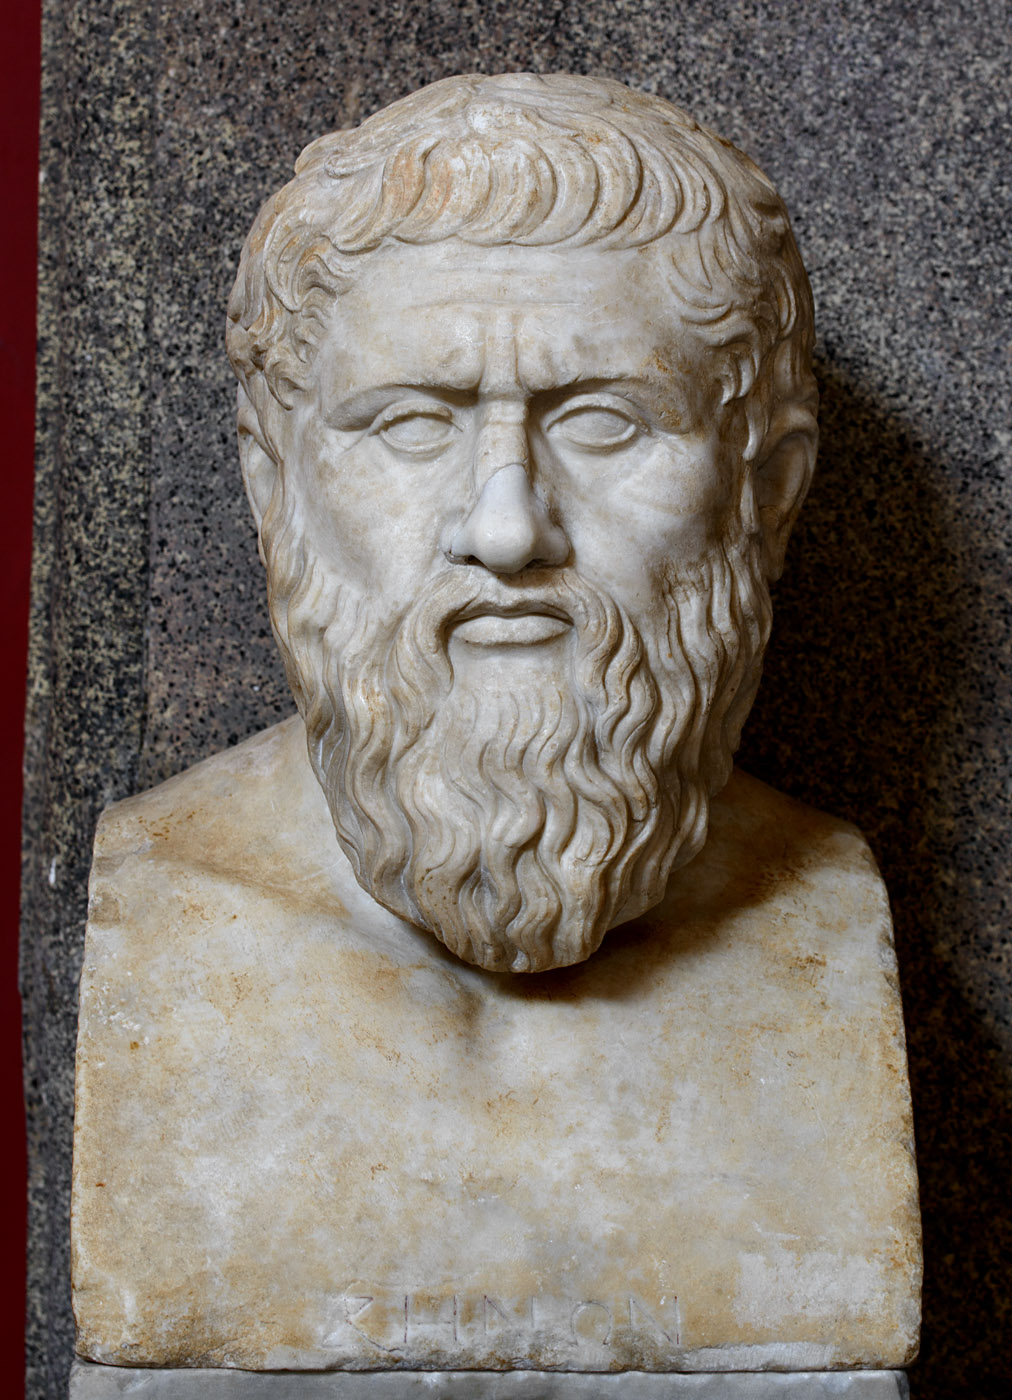 """Herm of Plato. Roman copy from a Greek statue of the last quarter of the 4th century BCE. The inscription """"ΖΗΝΩΝ"""" is a mistake and modern addition. Inv. No. 305. Rome, Vatican Museums, Pius-Clementine Museum, Room of the Muses, 11"""